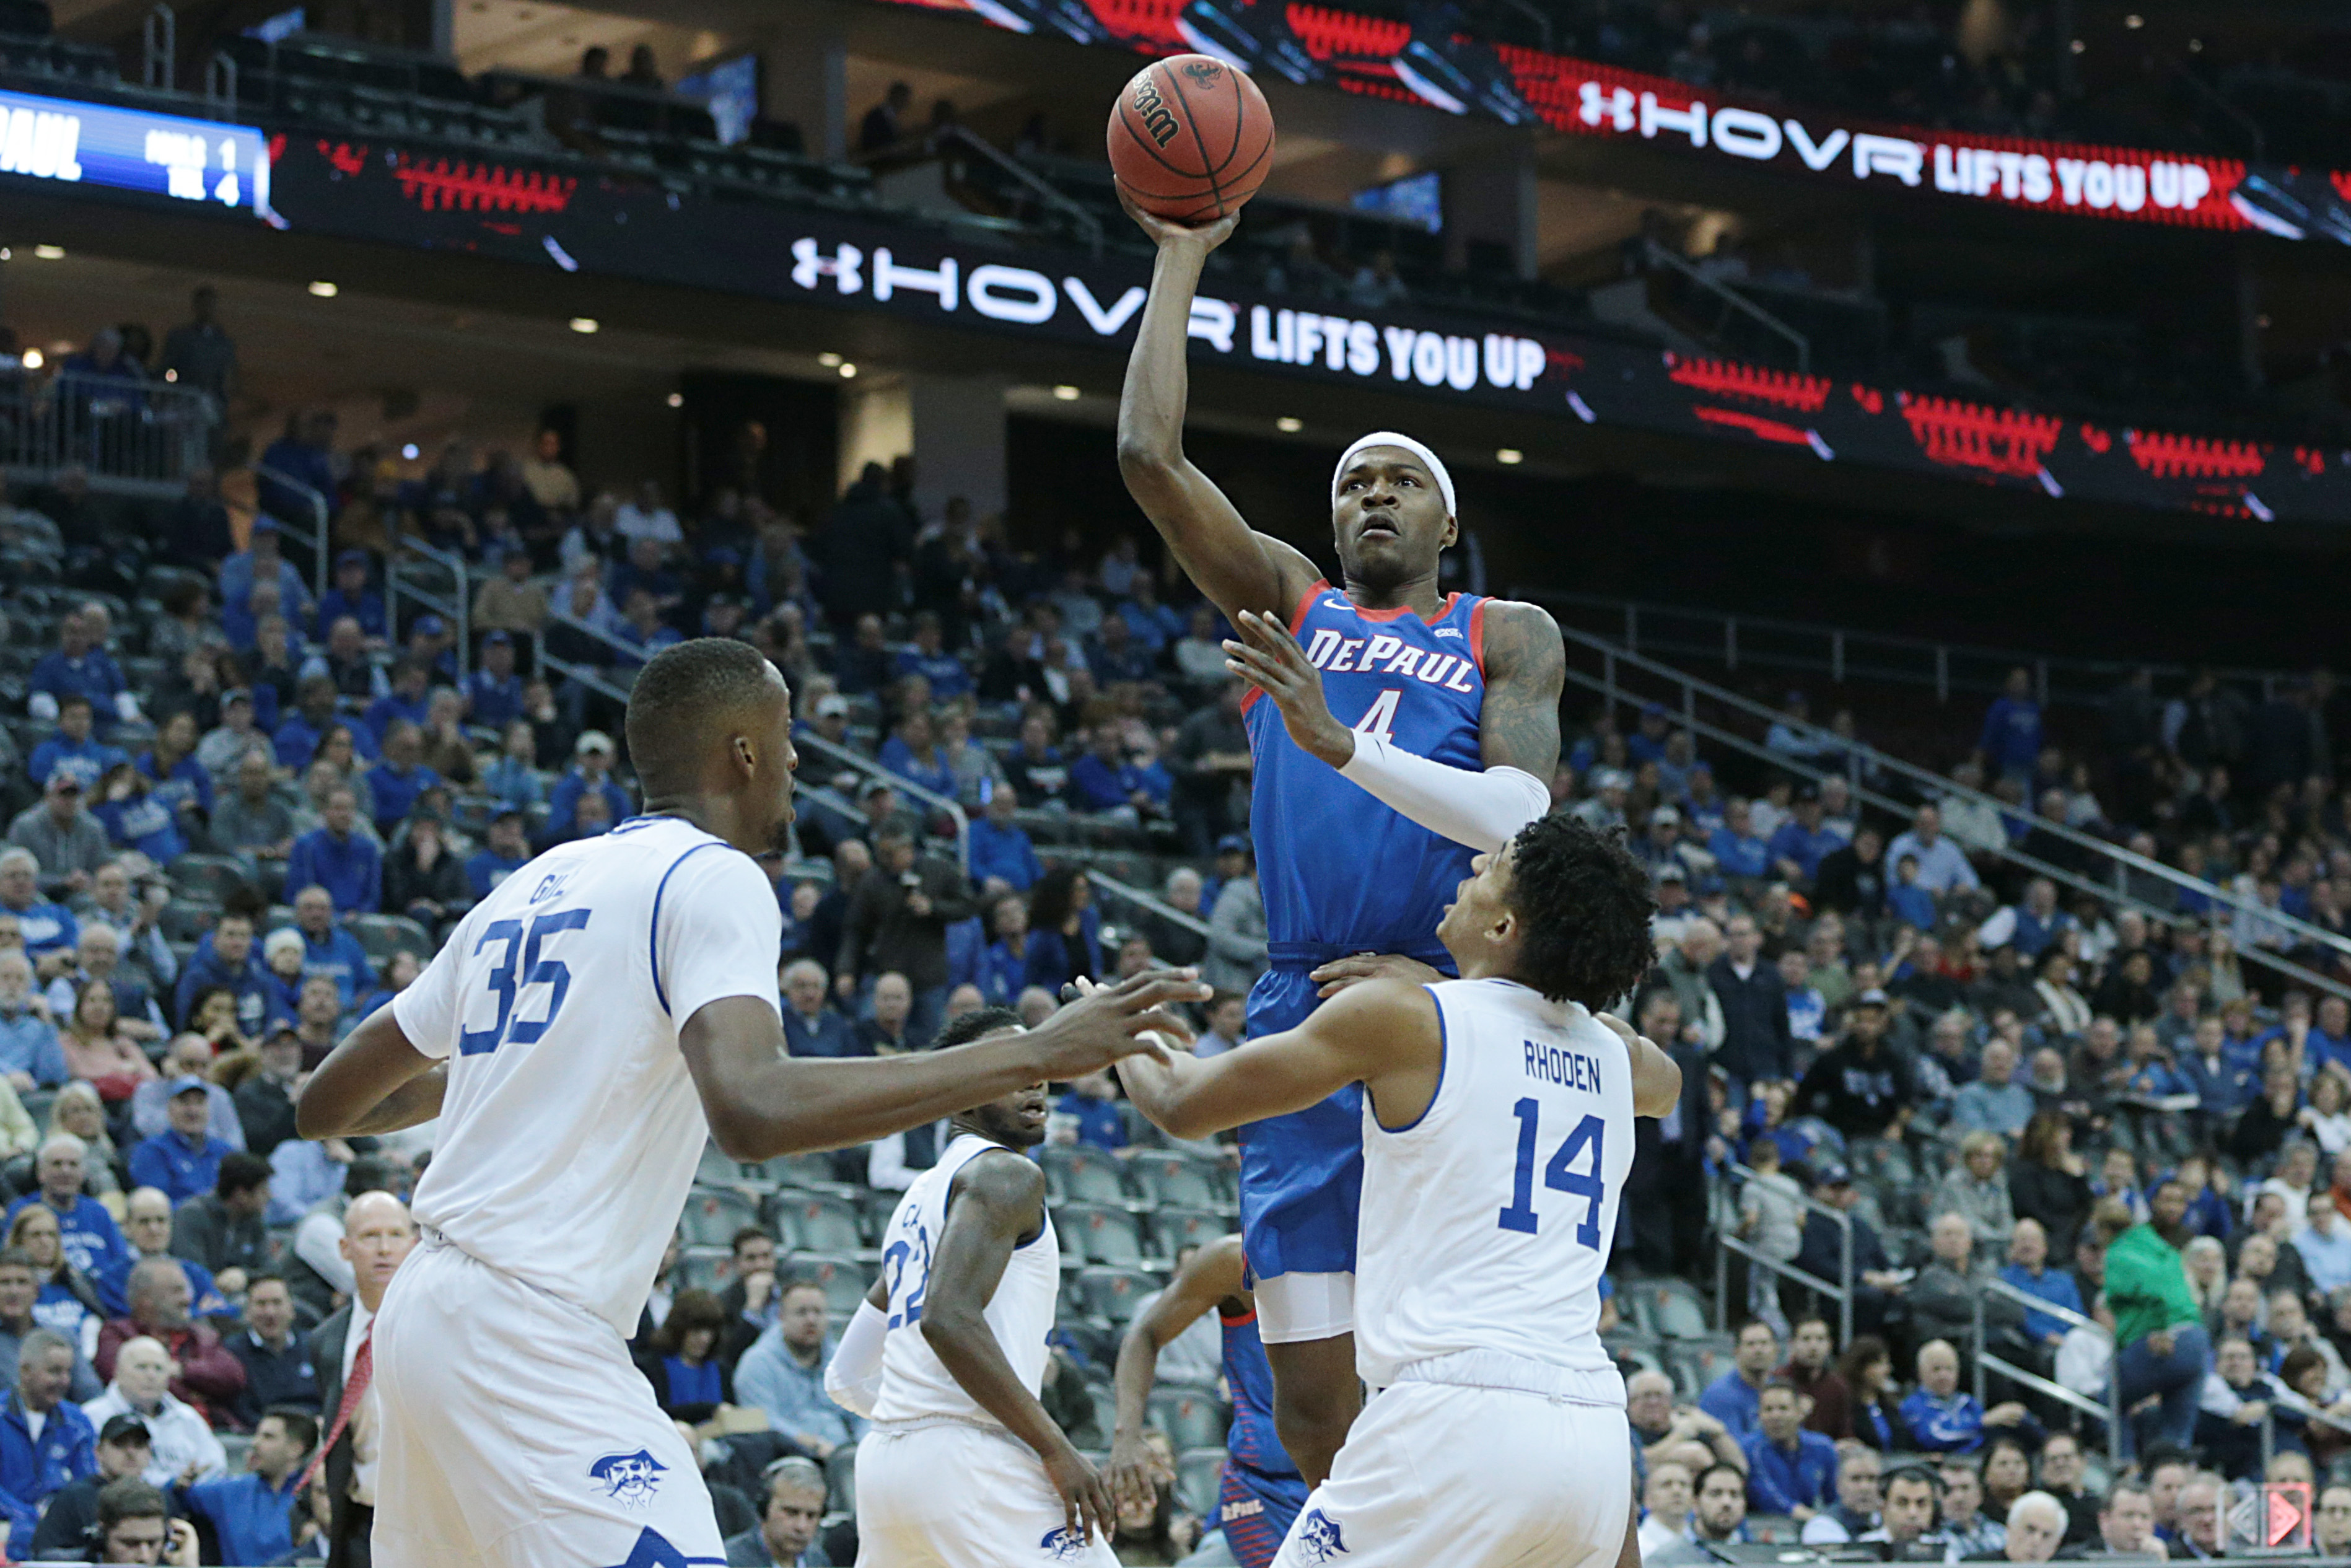 DePaul Blue Demons forward Paul Reed shoots the ball as Seton Hall Pirates guard Jared Rhoden  and center Romaro Gill defend during the first half at Prudential Center